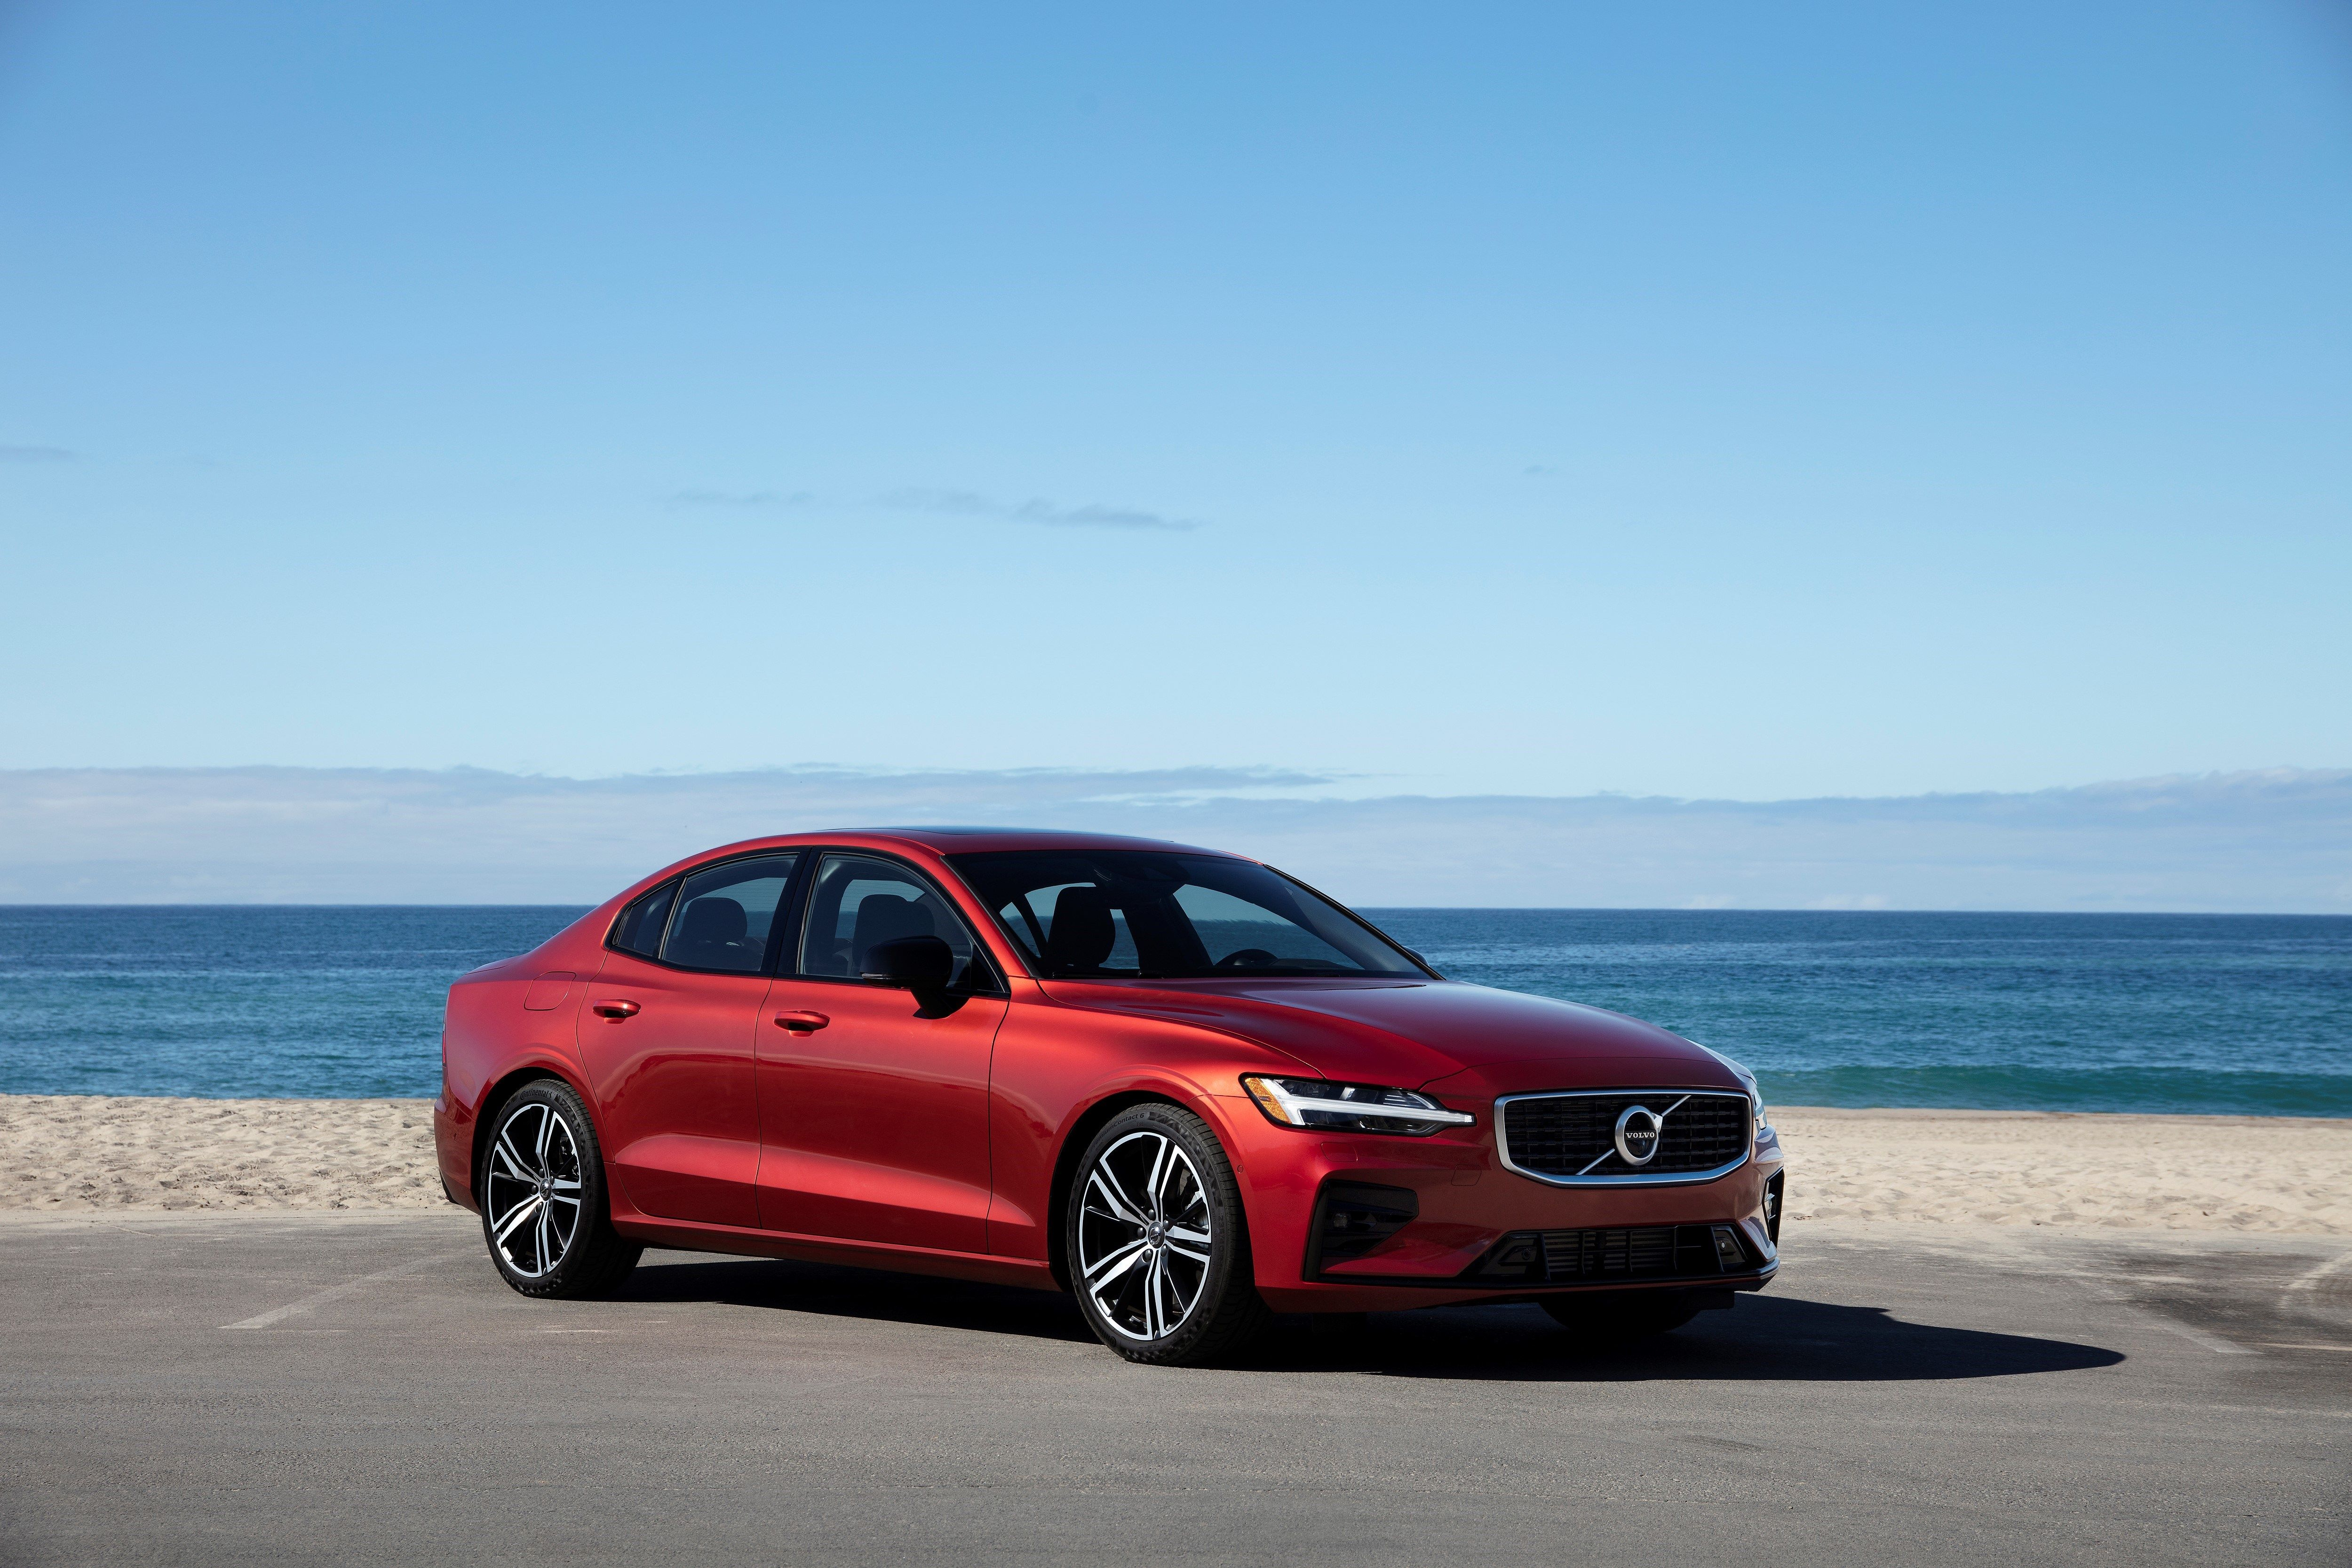 23 Best Small Luxury Cars - Top Entry-Level Luxury Cars